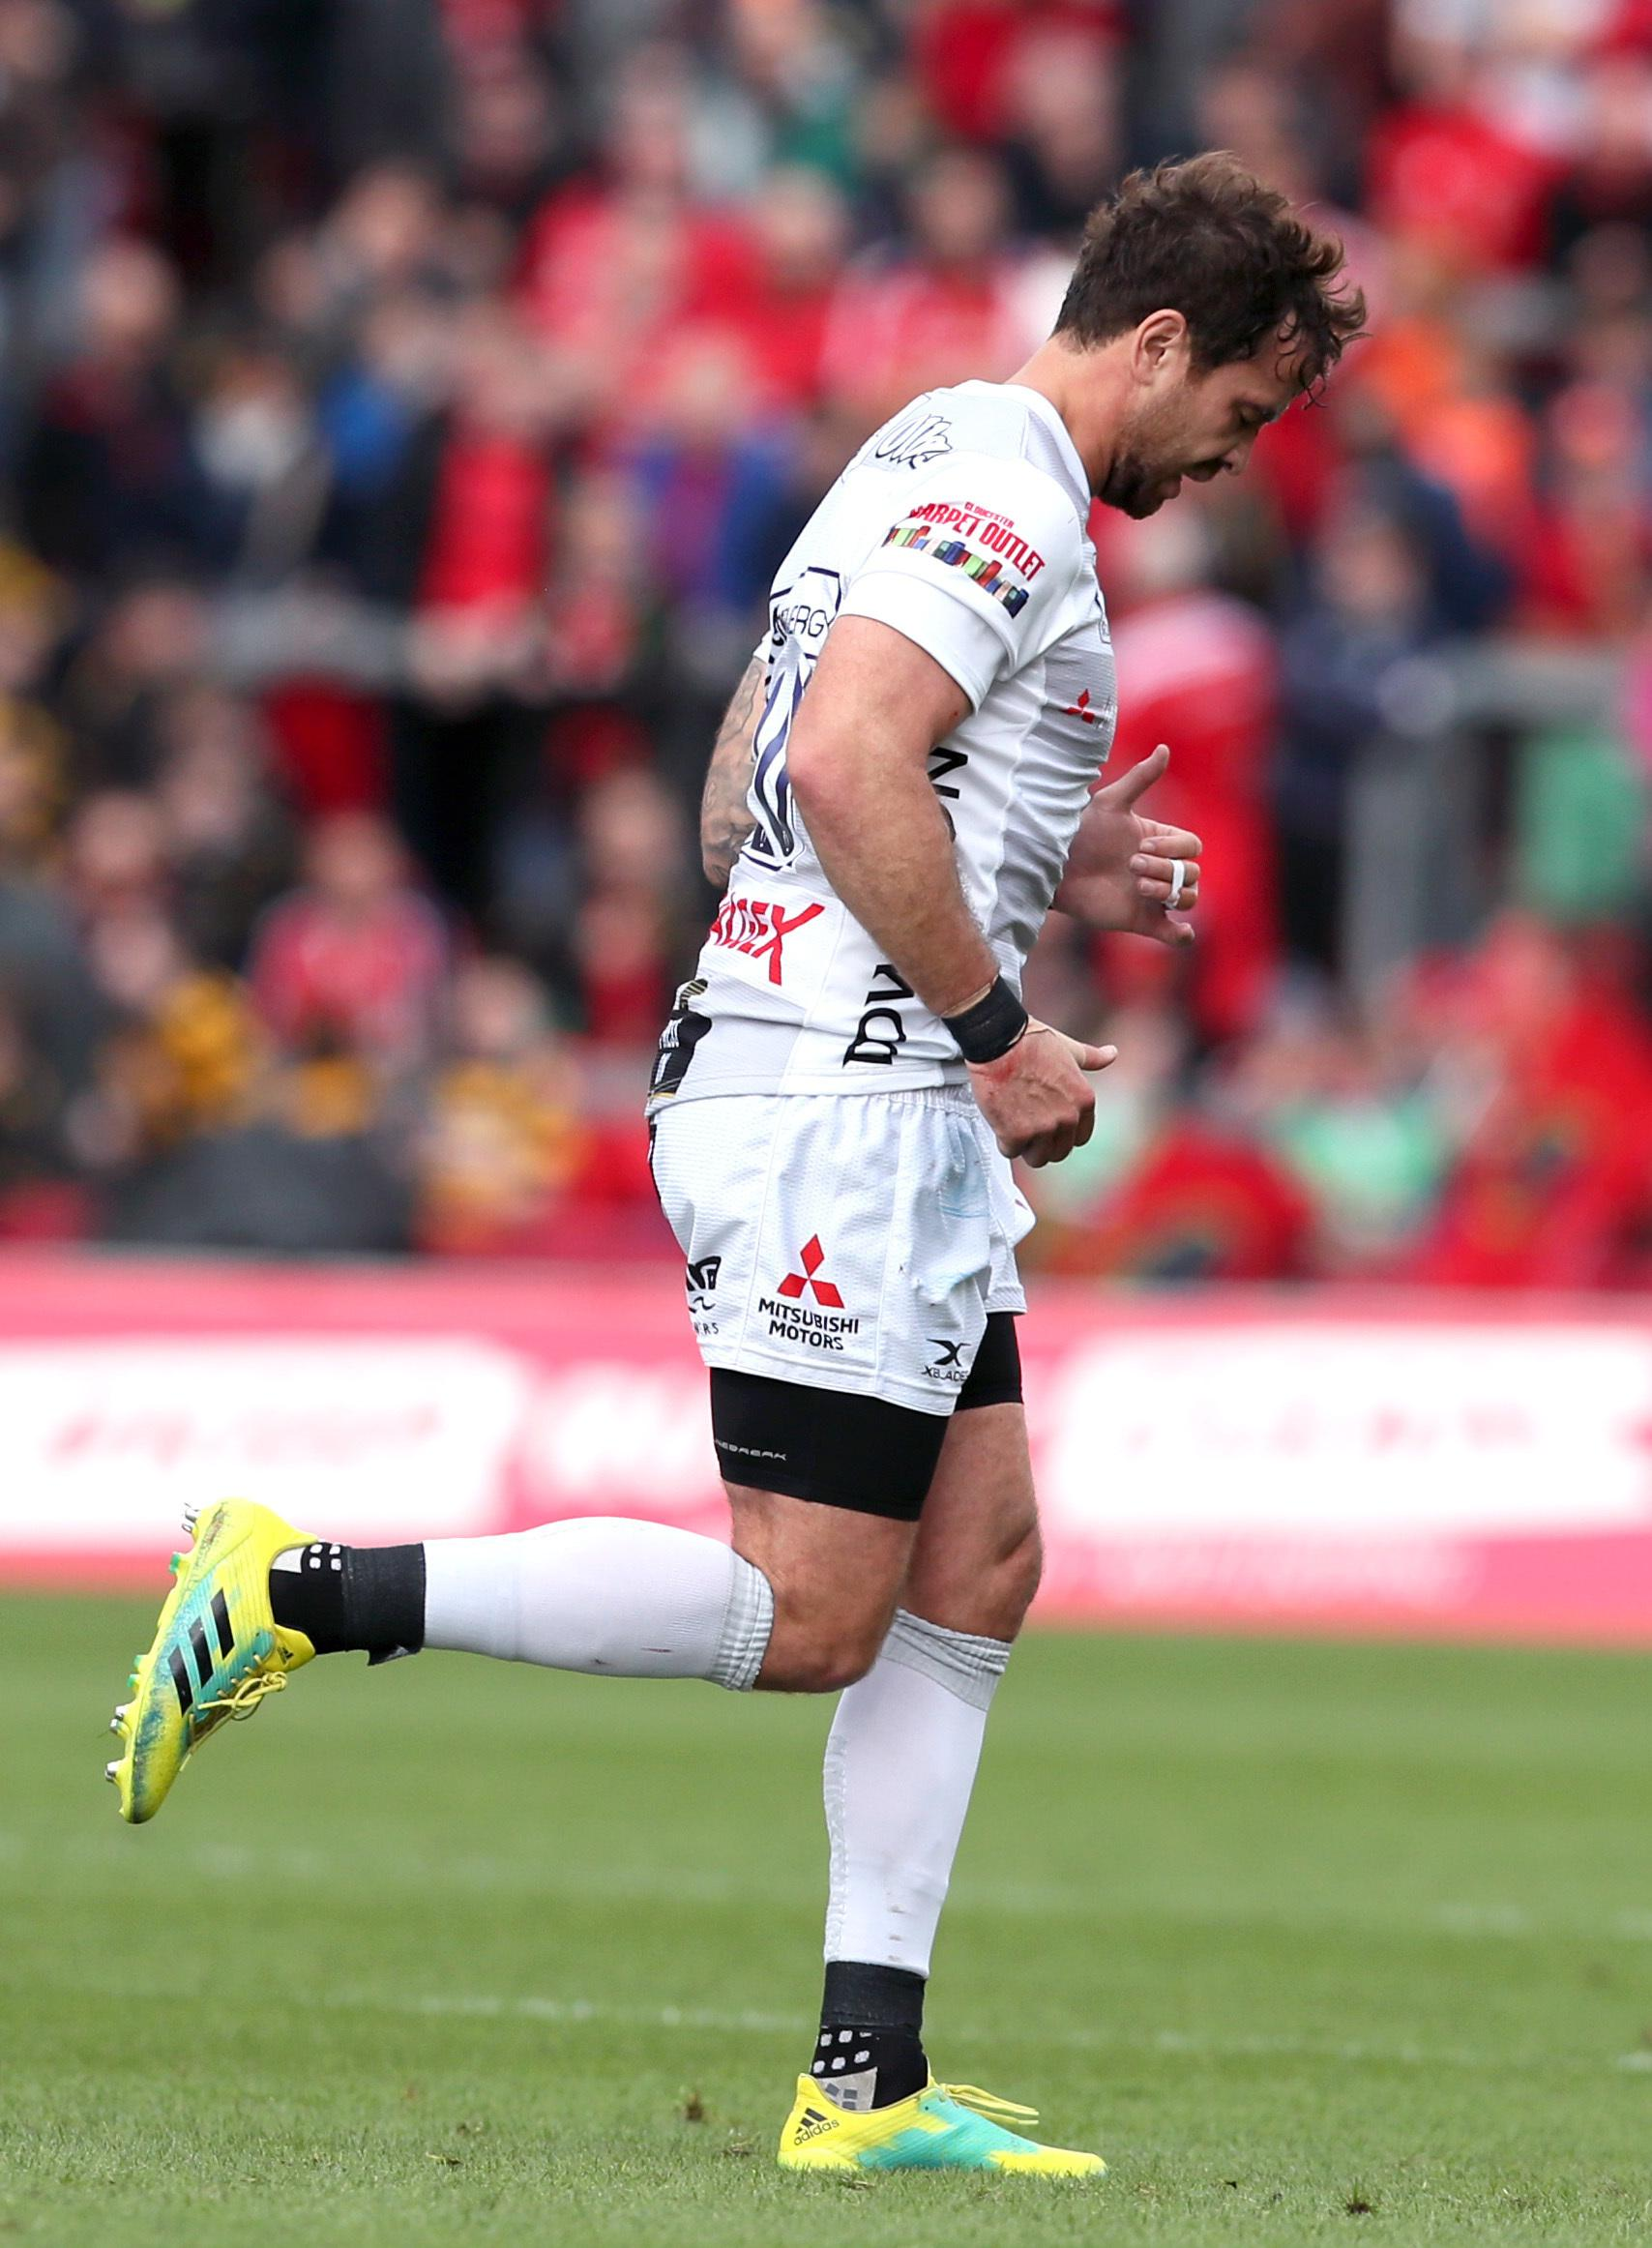 Cipriani ran off the pitch after being shown his red card